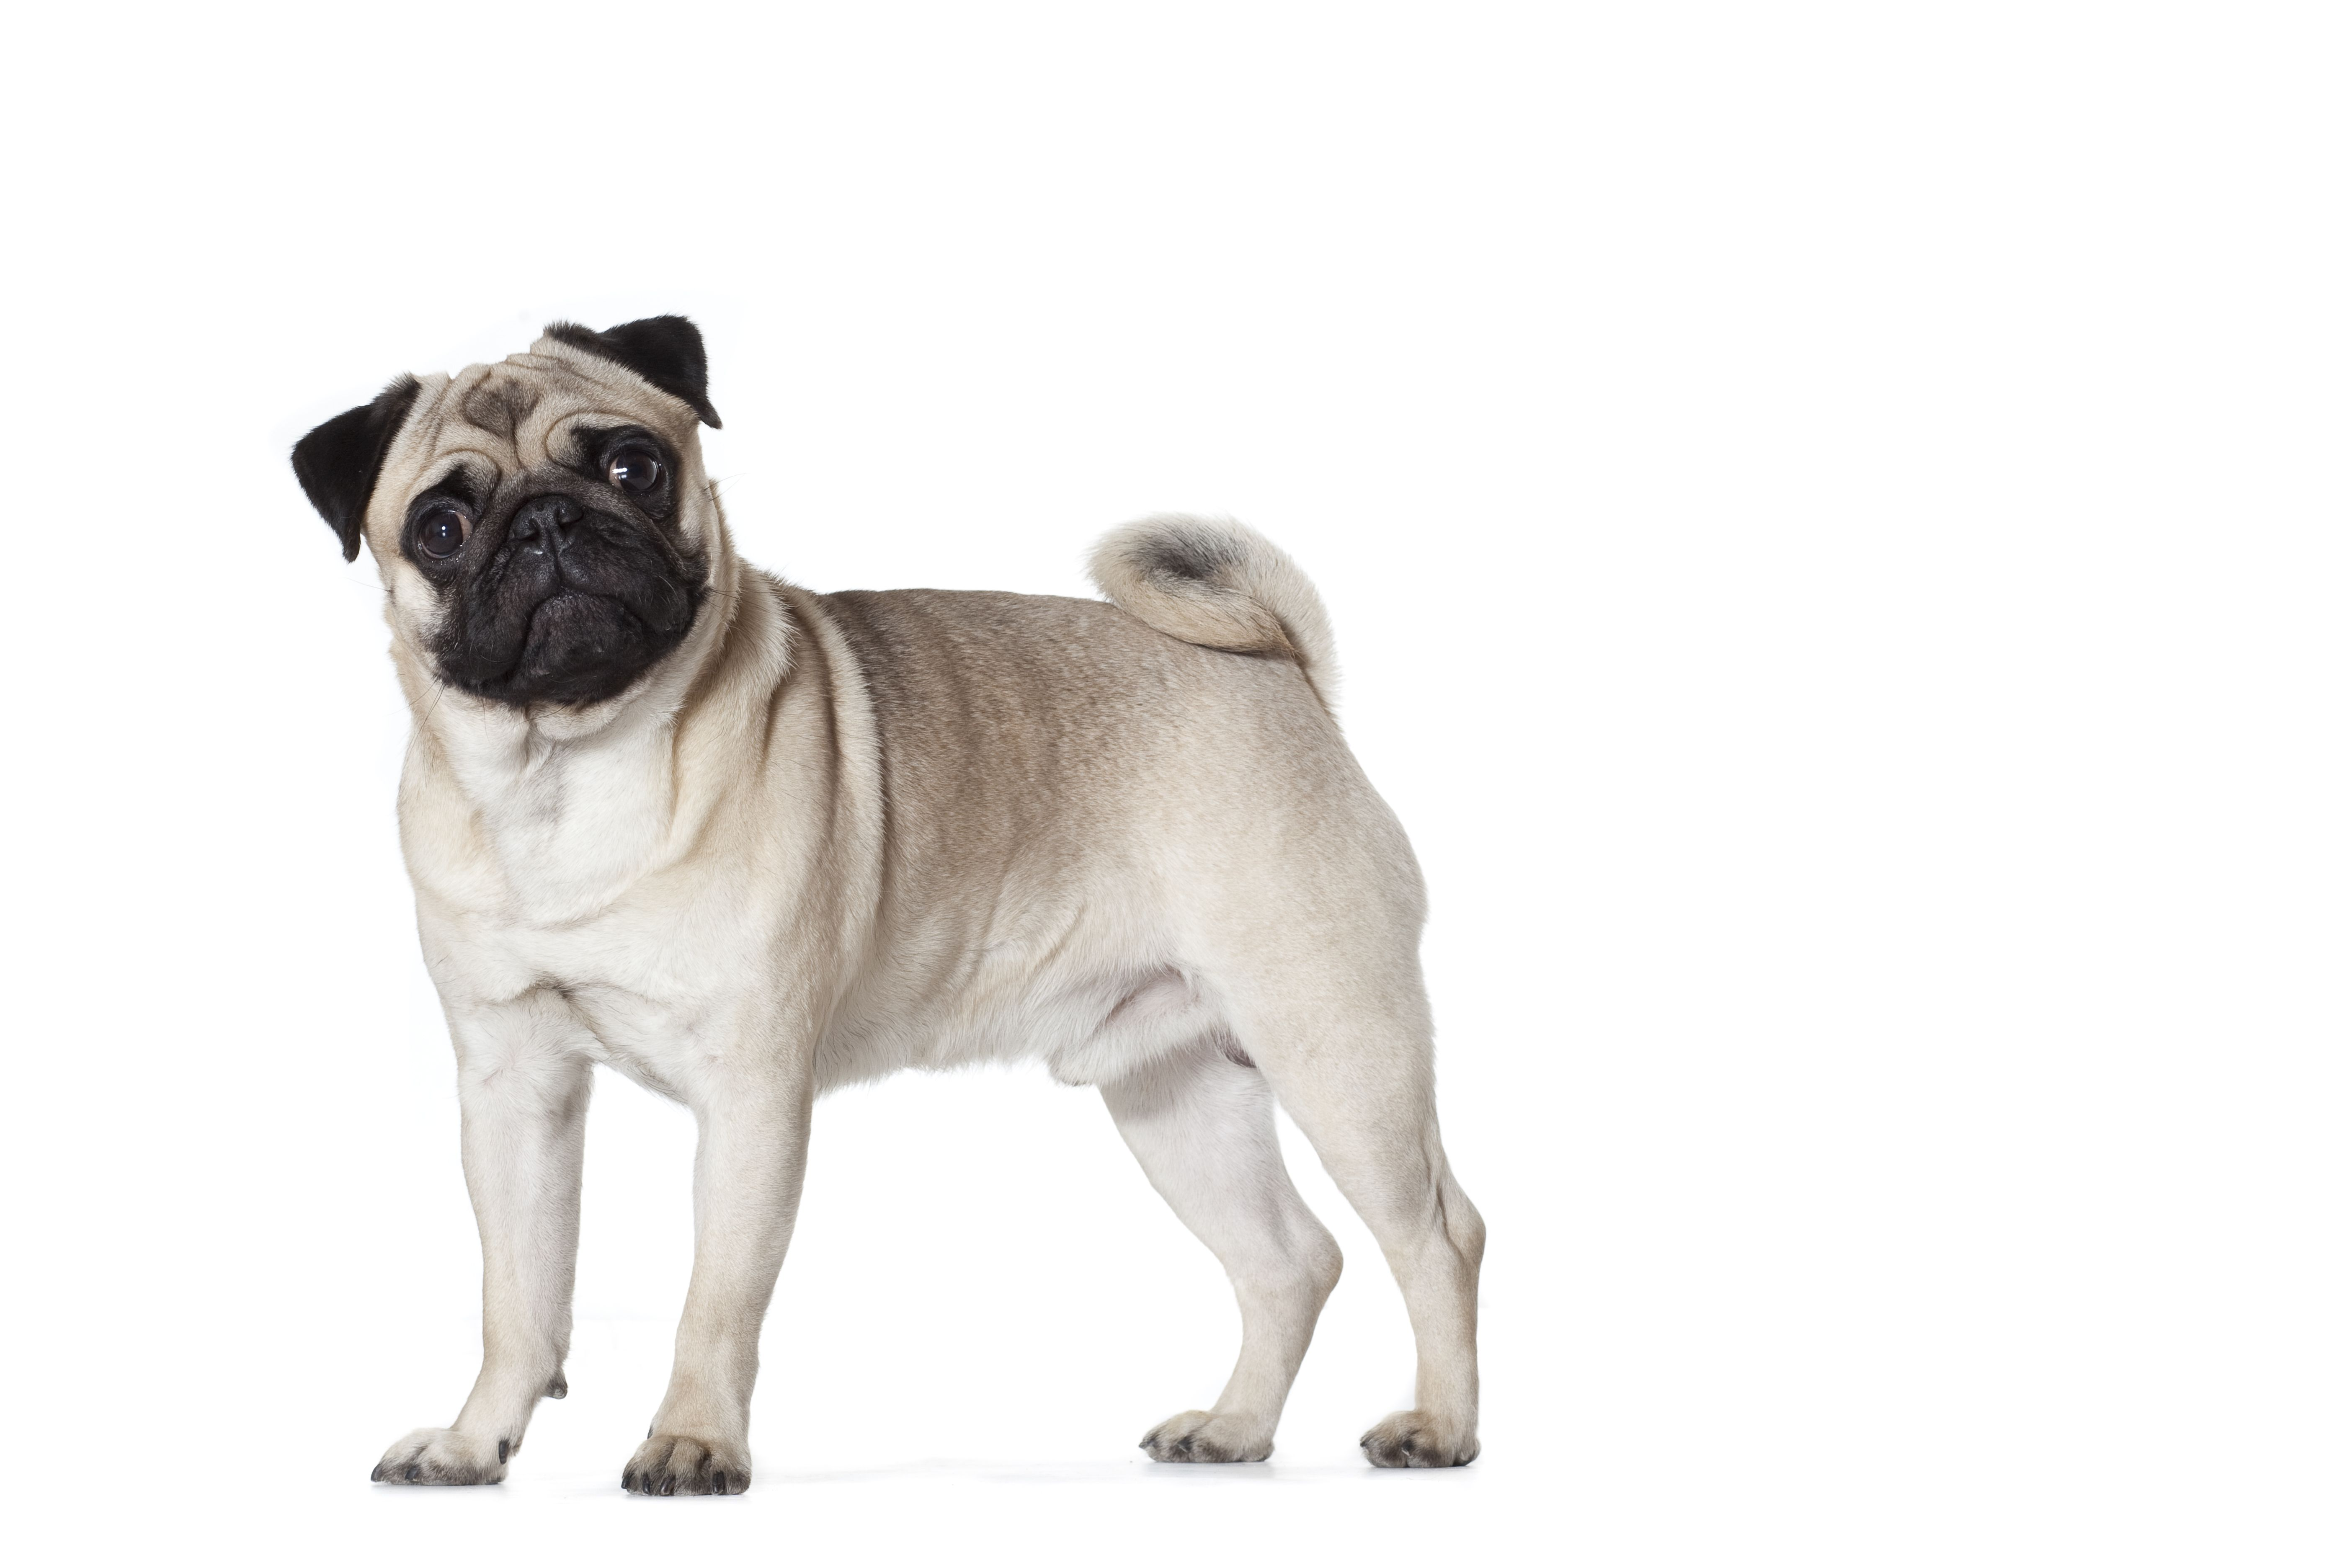 The American Kennel Club Says The Pug Is One Of The Oldest Breeds